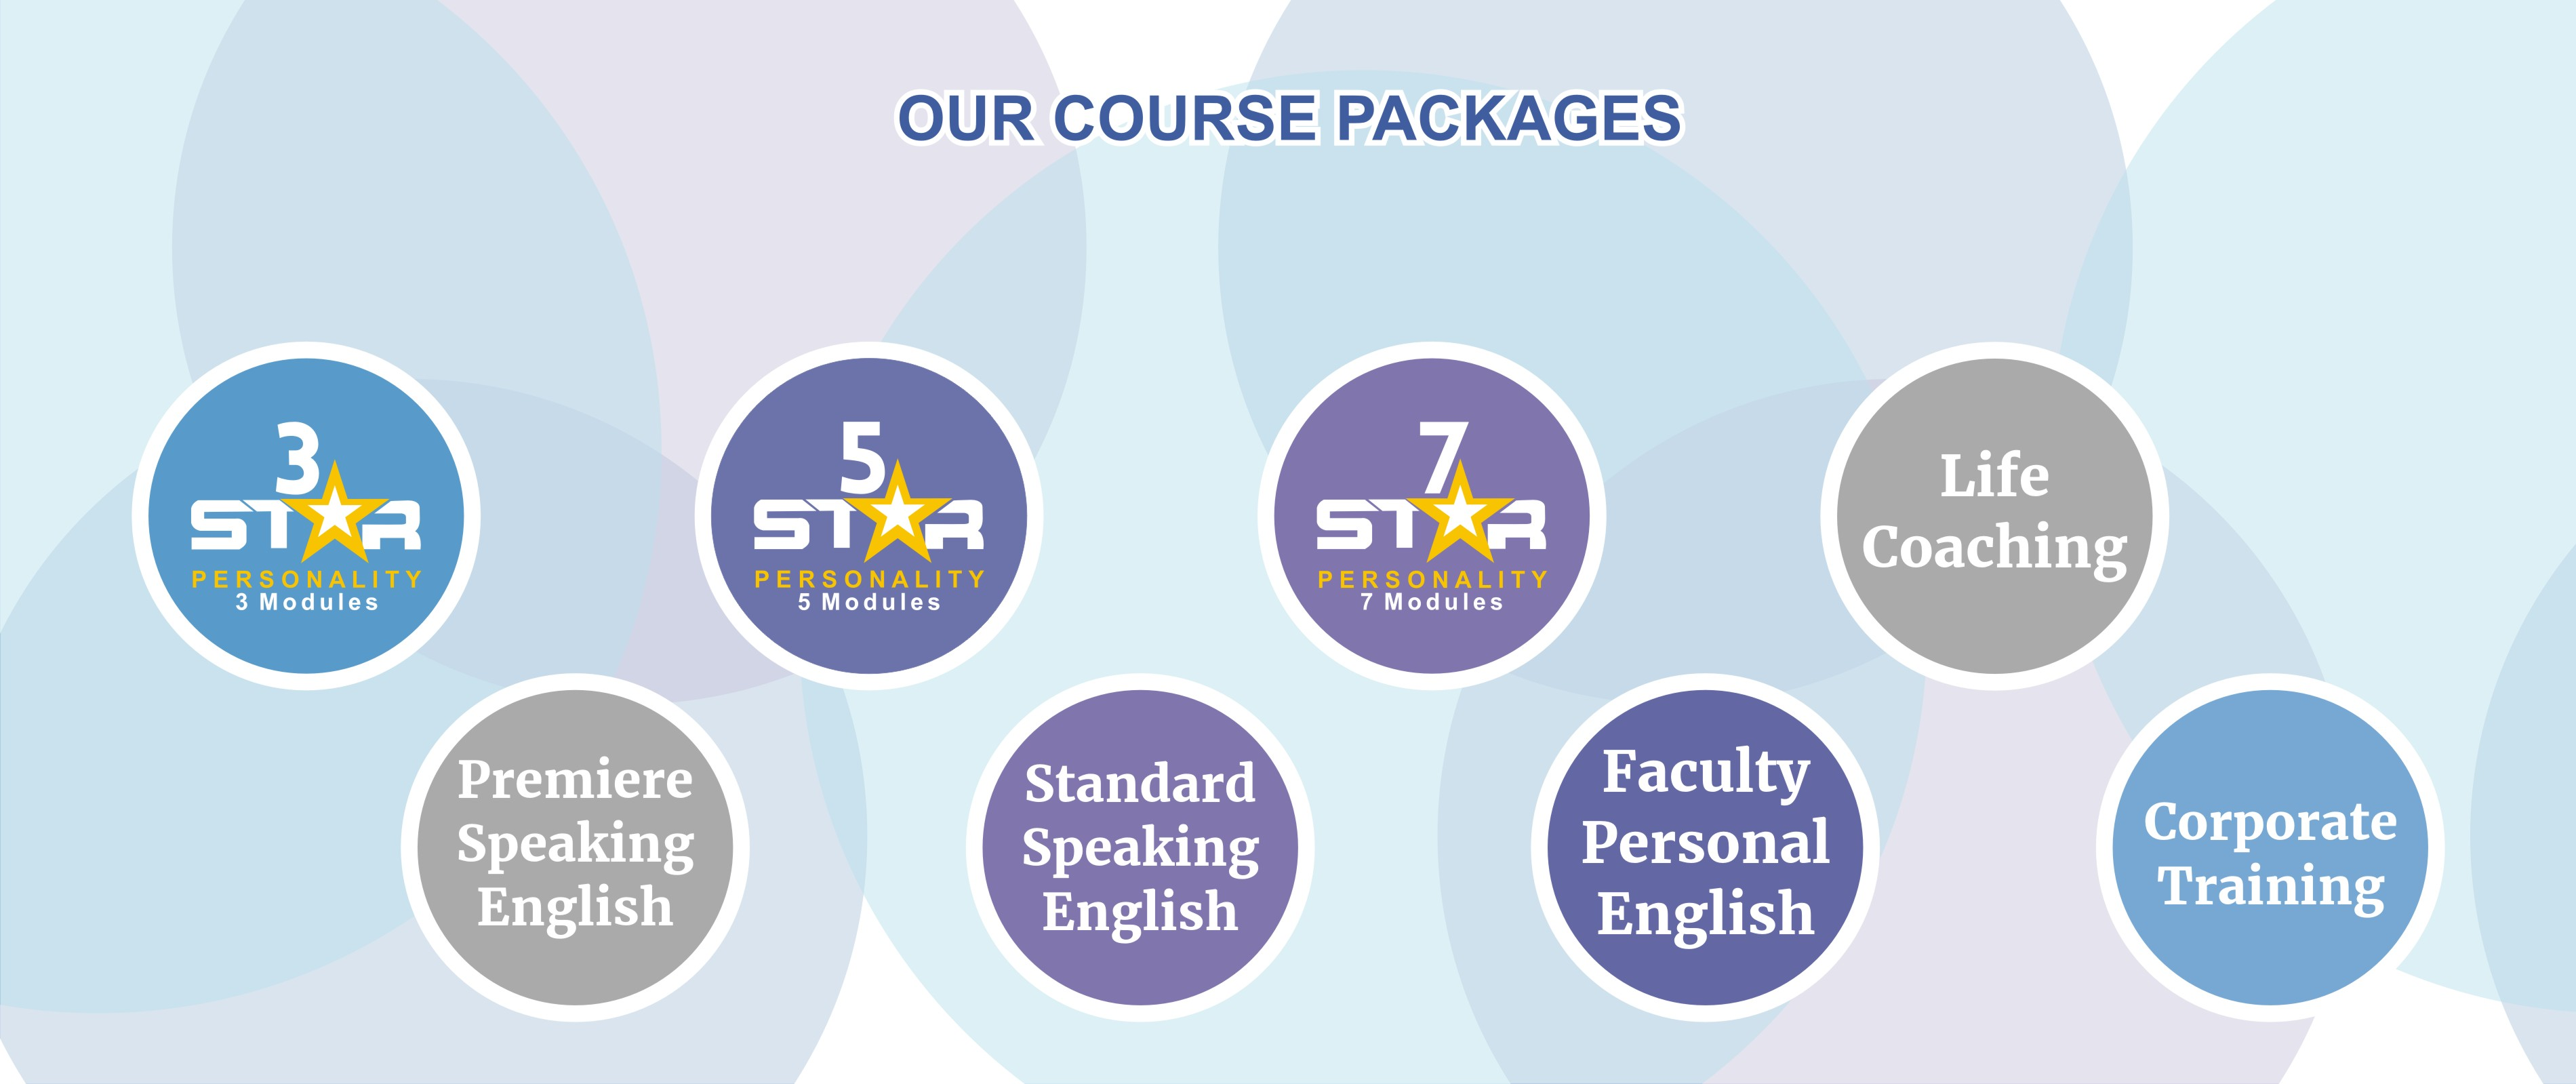 4.-OUR-COURSE-PACKAGES